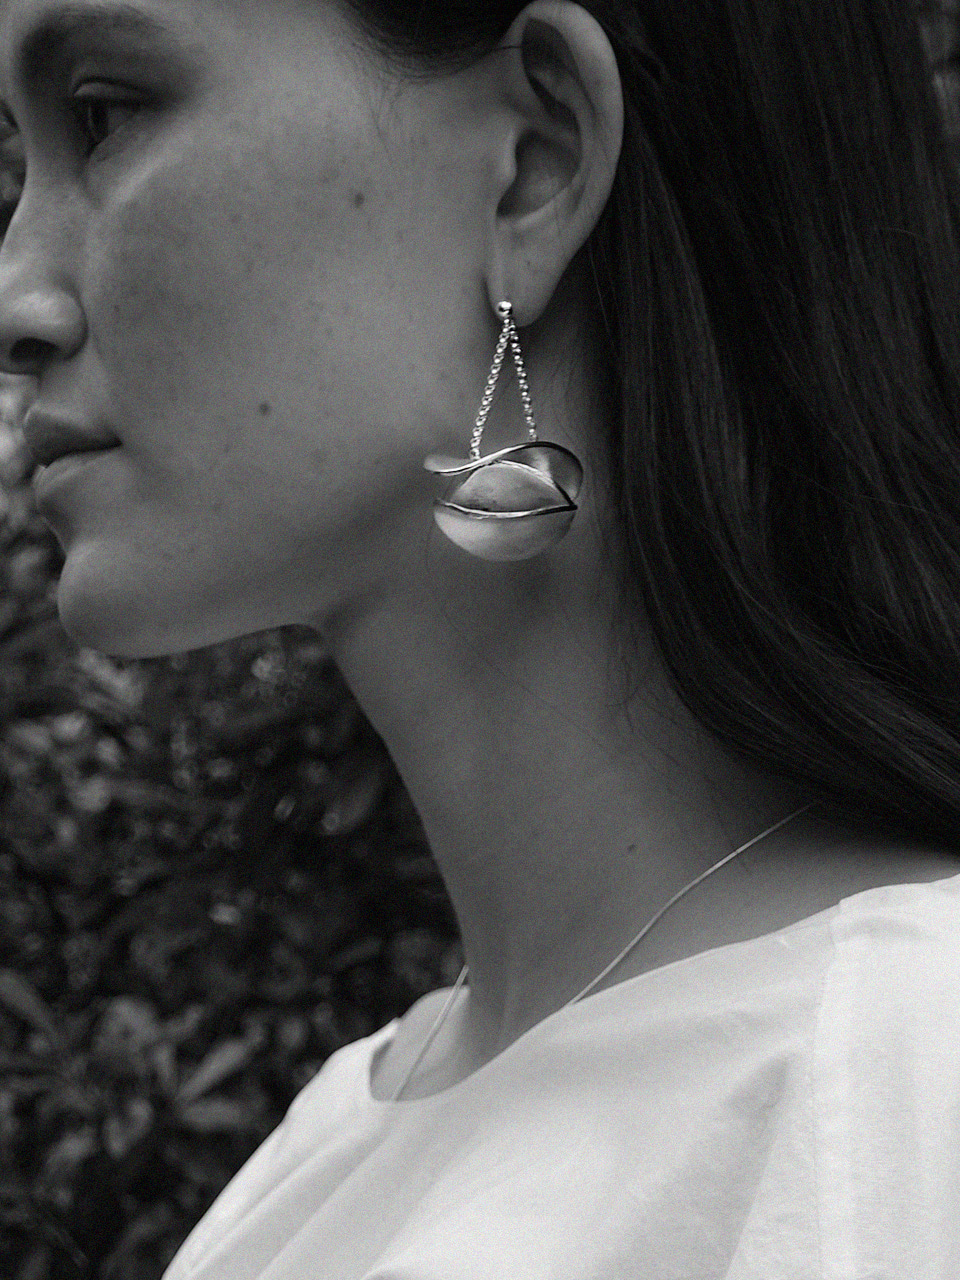 Leaf chain earring